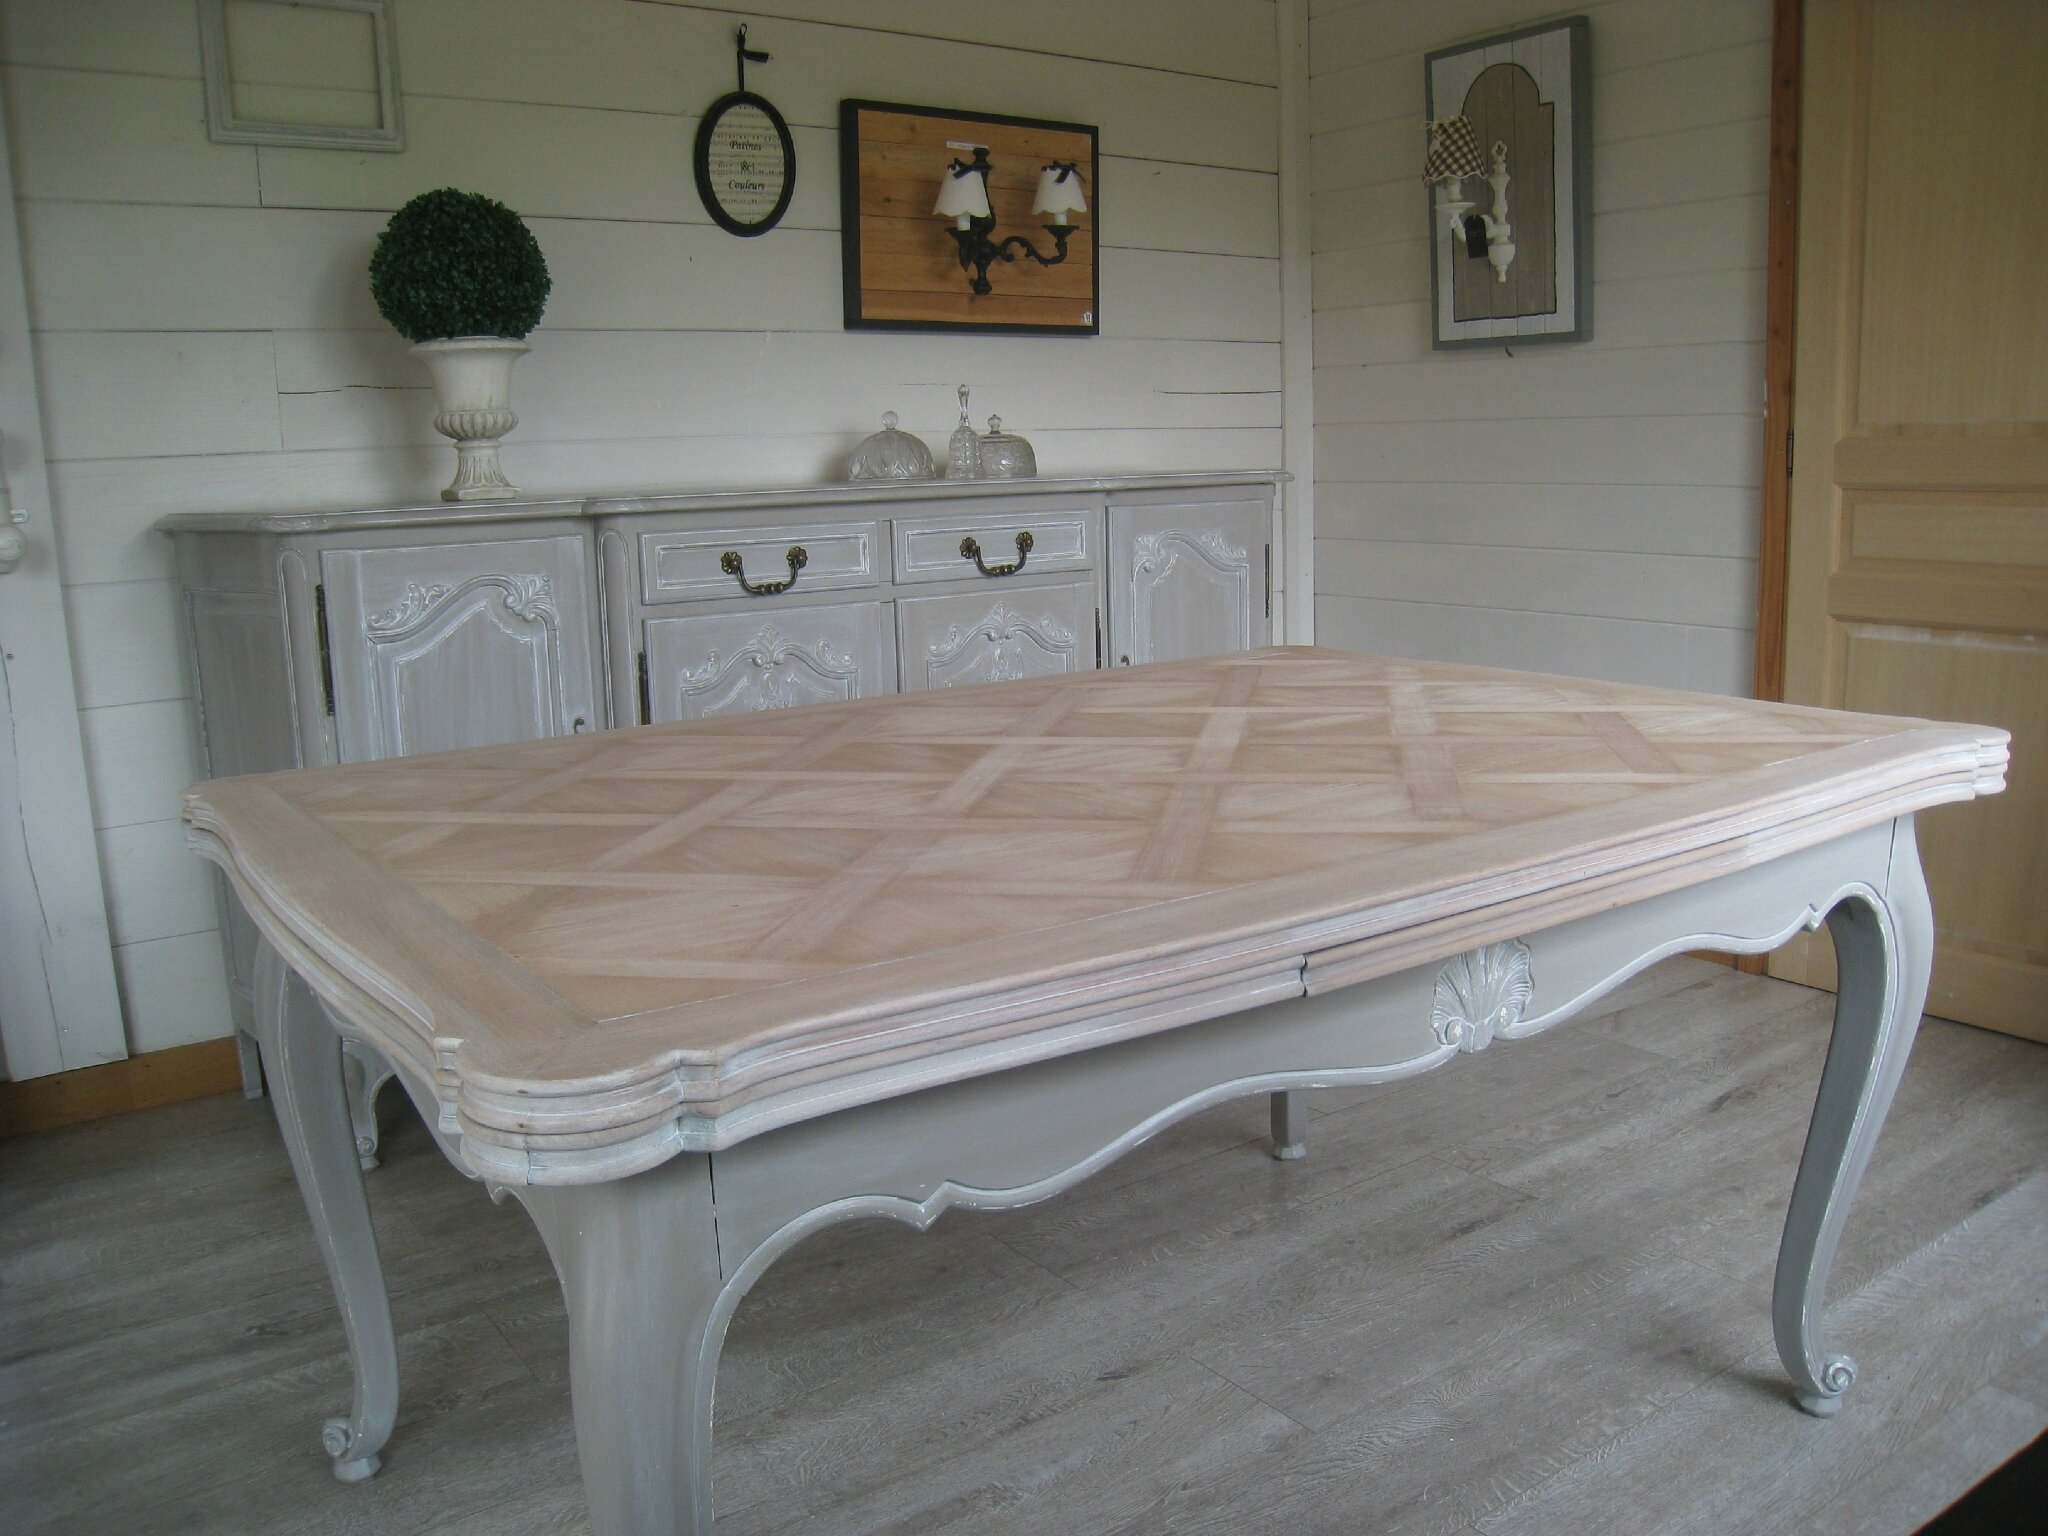 Bahut r gence relook et sa table assortie 2 patines - Restaurer une table en bois ...